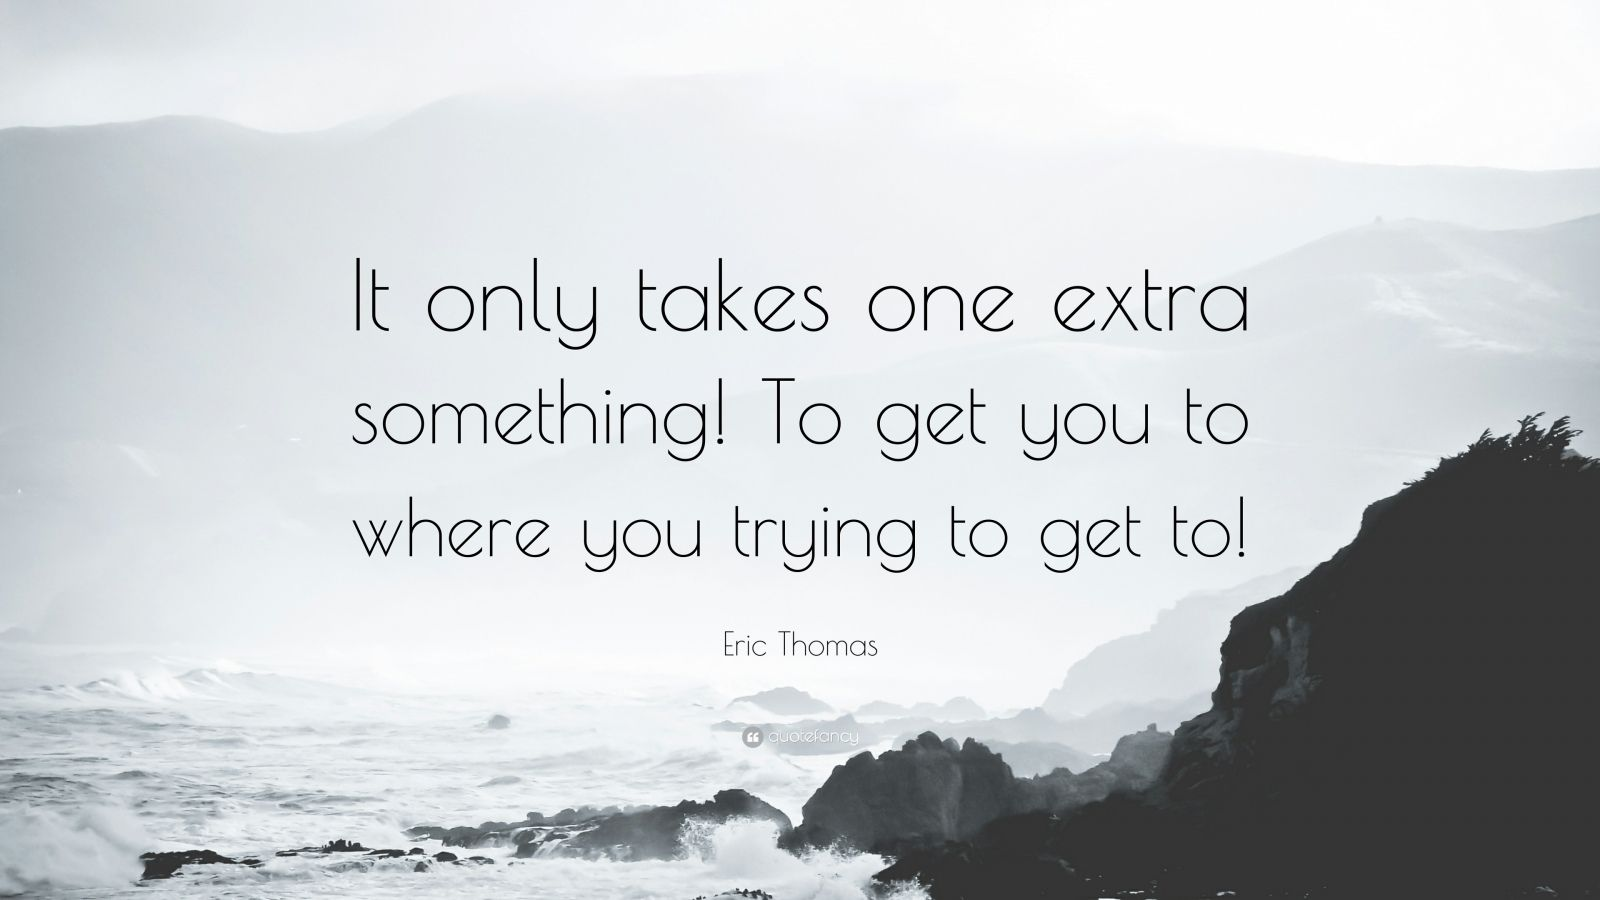 """Eric Thomas Quote: """"It only takes one extra something! To get you to where you trying to get to!"""""""